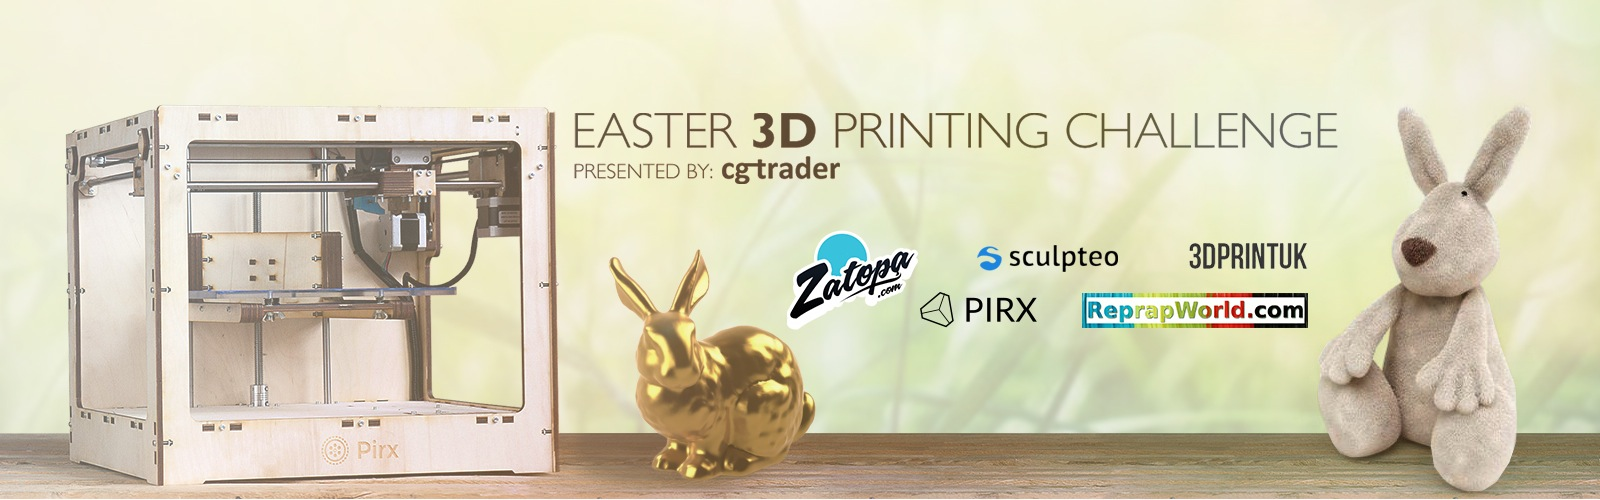 Easter 3D Printing Challenge